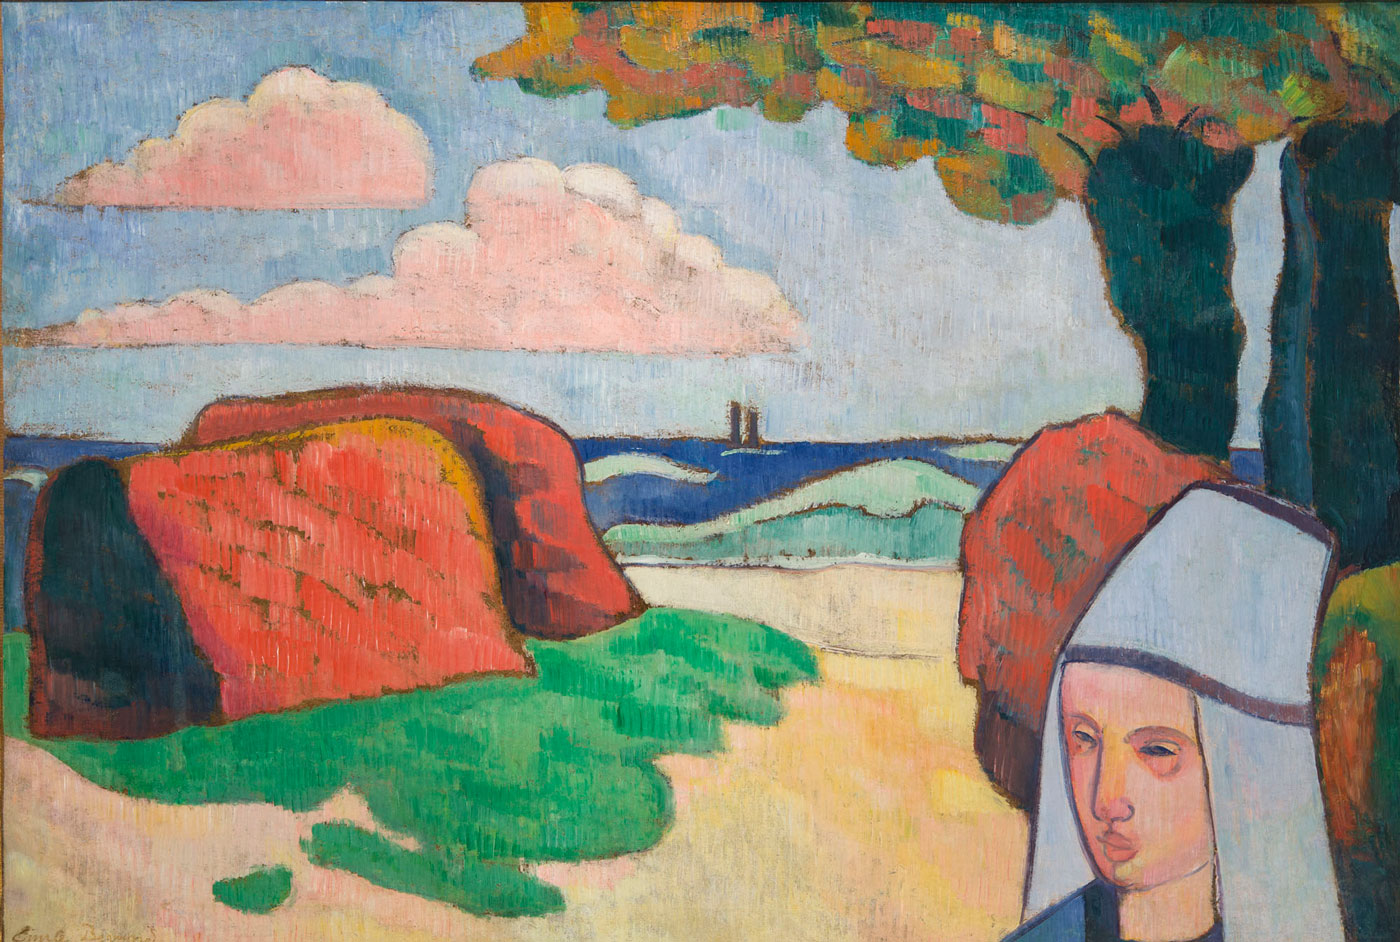 Colorful painting of a woman's face in front of a beach by Emile Bernard